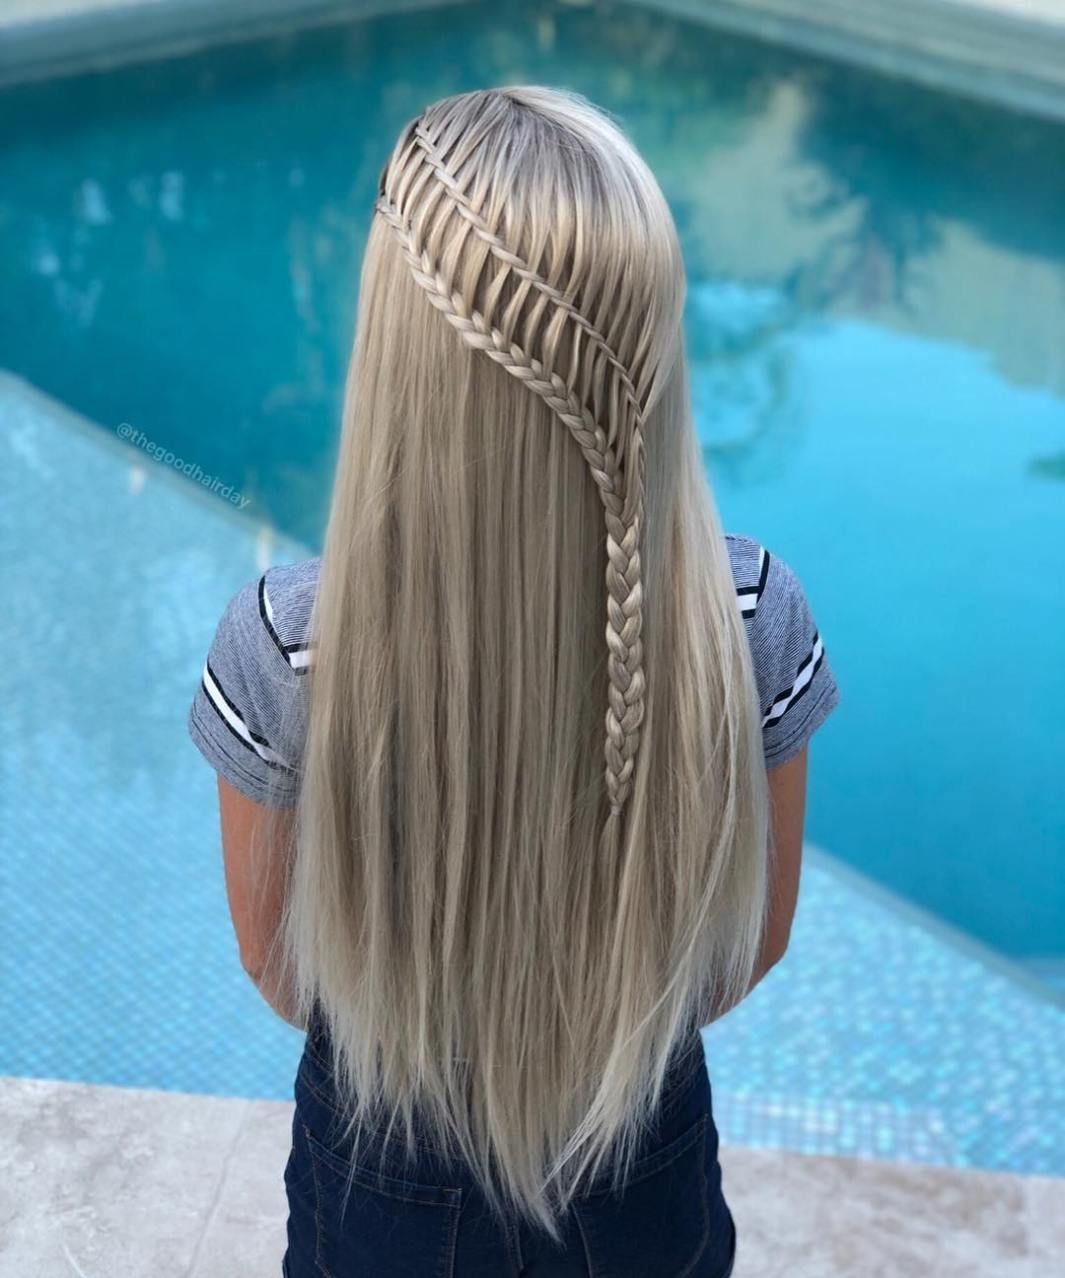 20 Party Hairstyles for Long Hair | Party hairstyles for ...